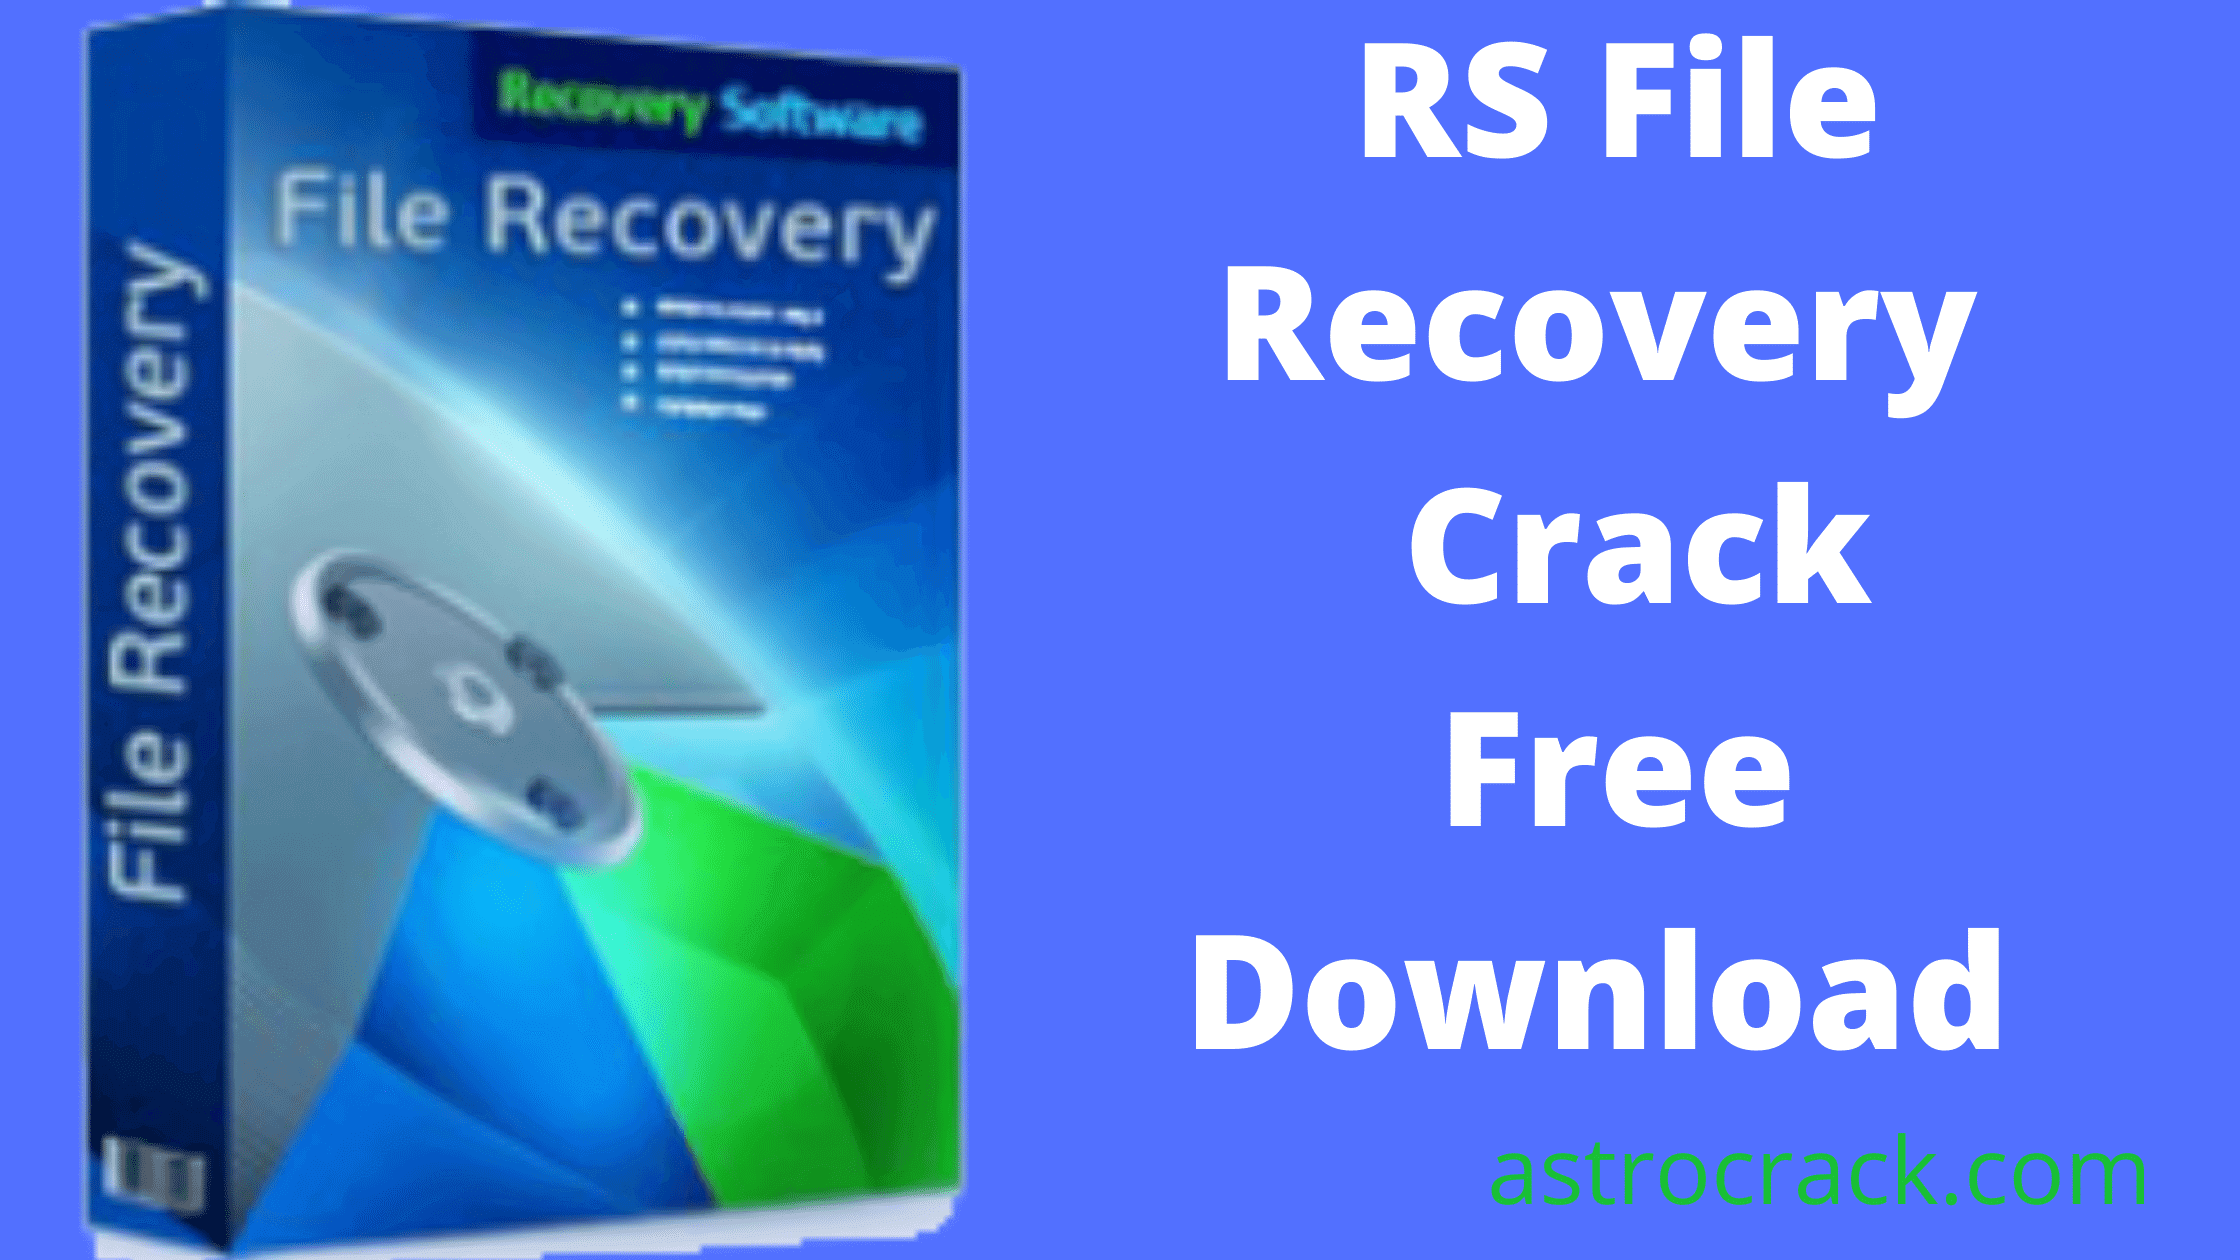 RS File Recovery, RS File Recovery crack, RS File Recovery crack download, RS File Recovery Crack patched, RS File Recovery download